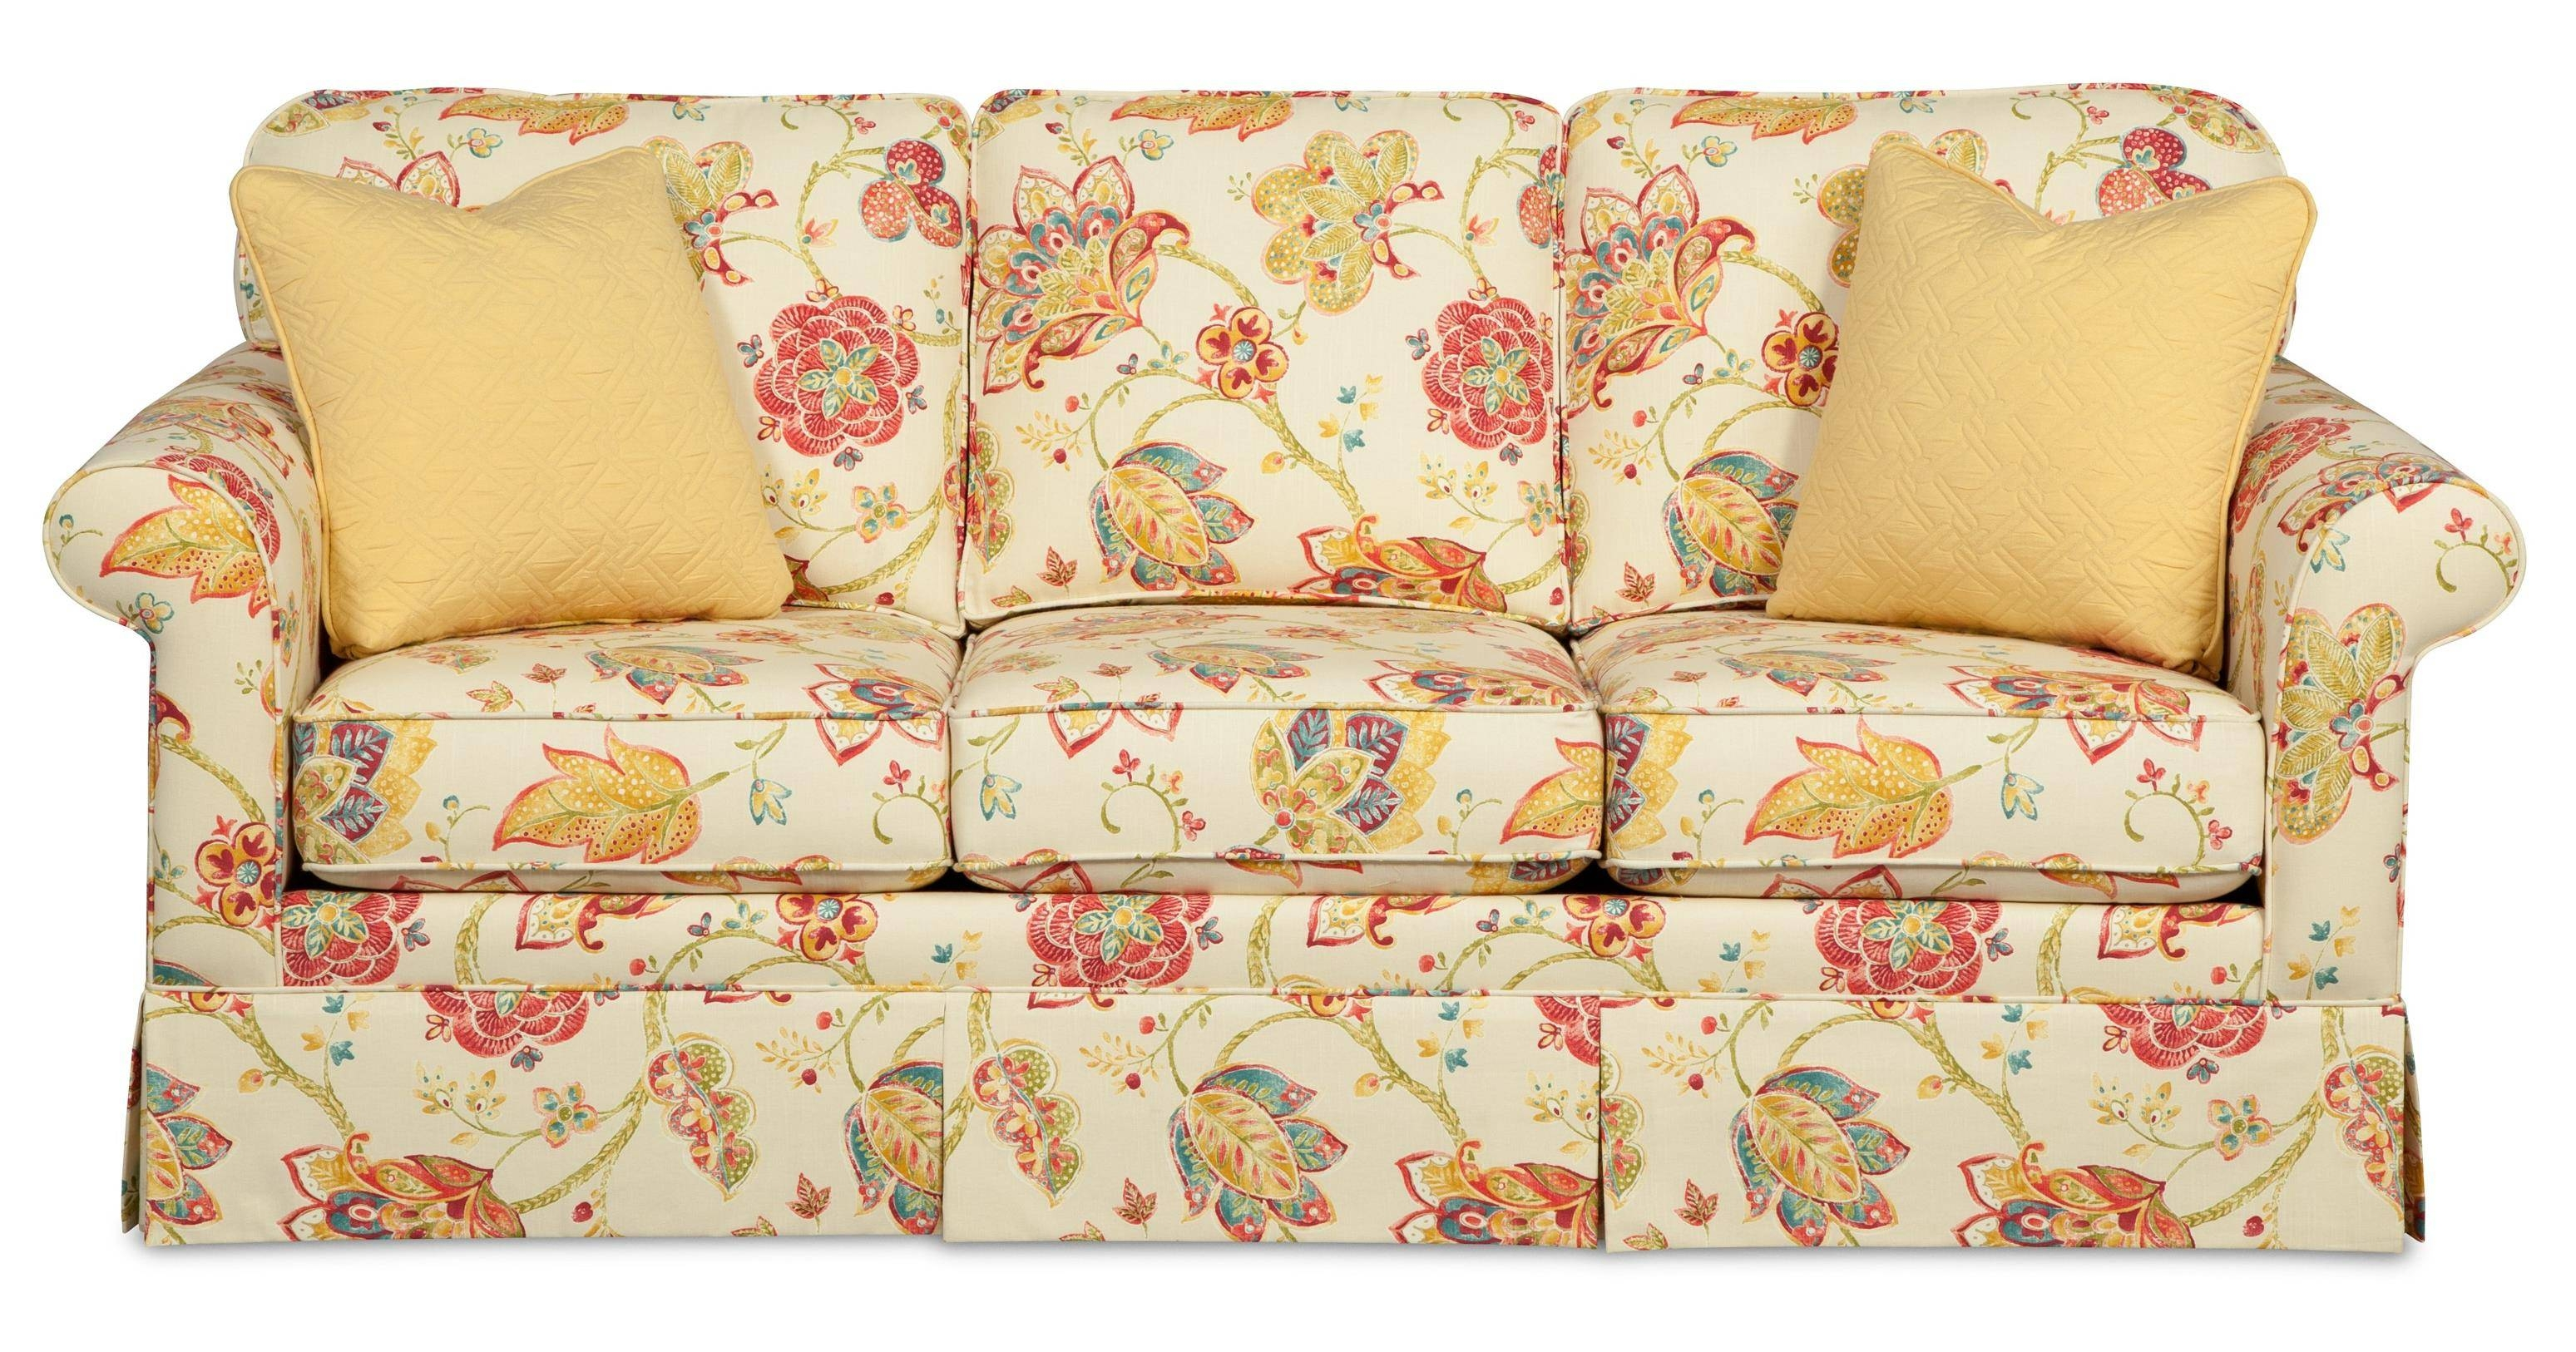 Traditional Sofas With Skirts | Tehranmix Decoration intended for Yellow Chintz Sofas (Image 30 of 30)